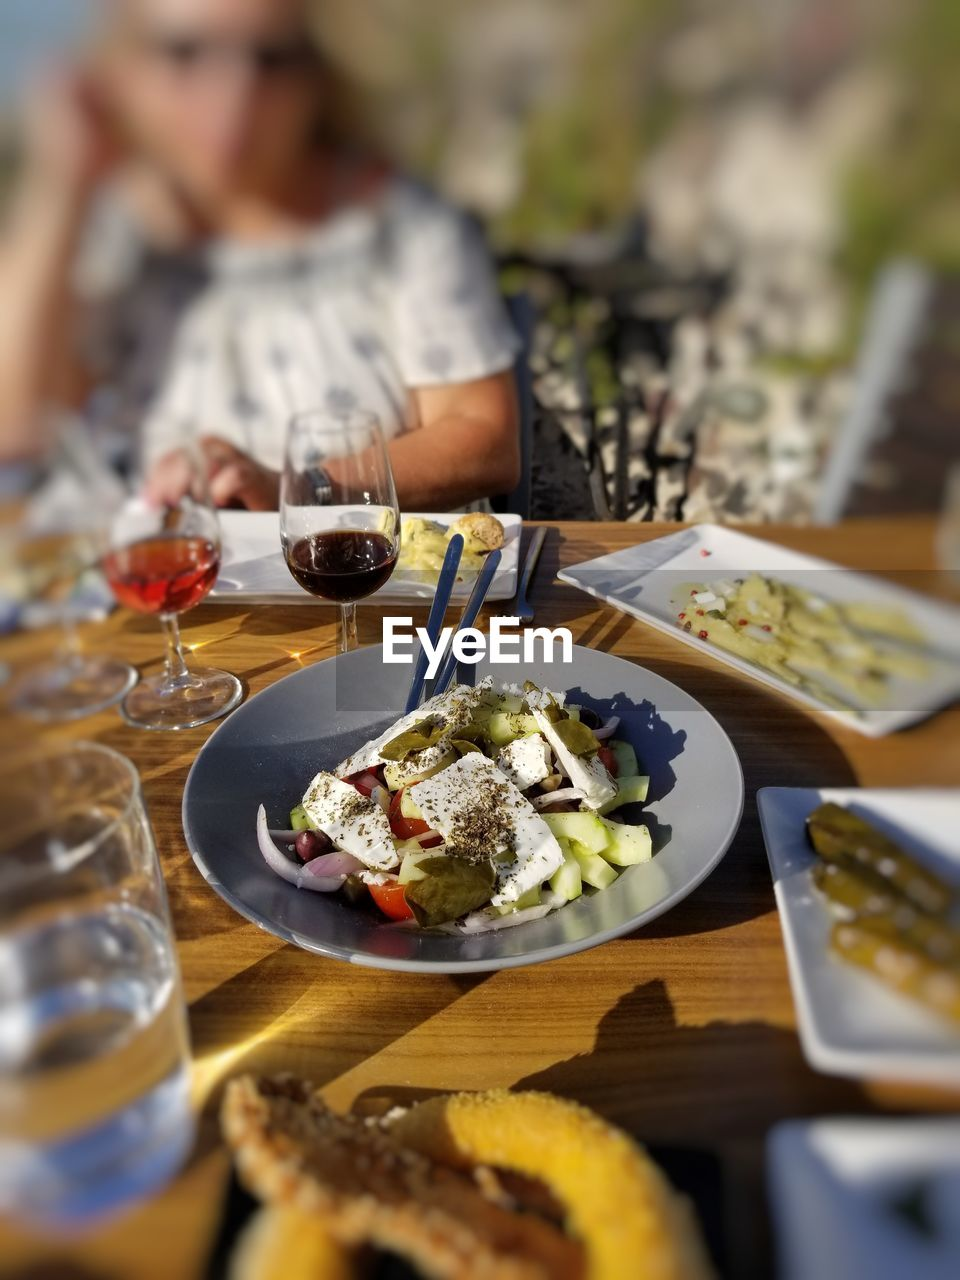 food and drink, food, table, drink, selective focus, freshness, refreshment, alcohol, ready-to-eat, glass, plate, wine, meal, healthy eating, wineglass, serving size, restaurant, wellbeing, dinner, business, red wine, japanese food